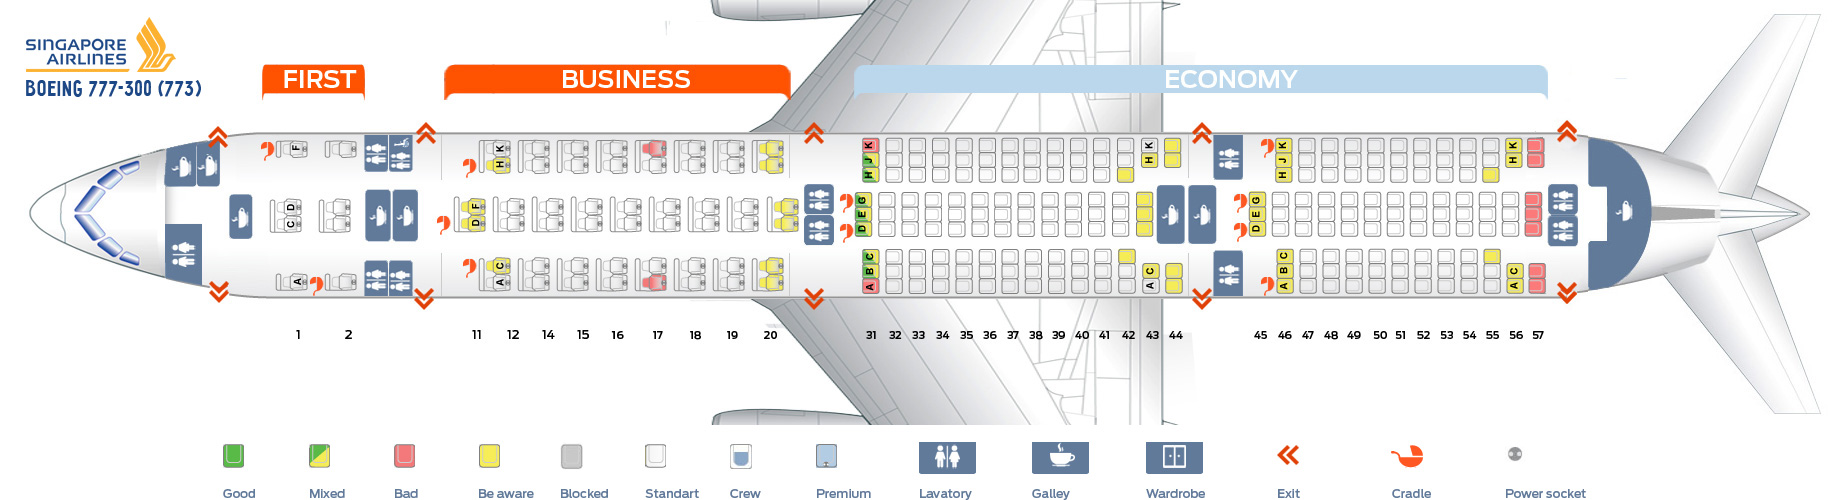 Seat Map Boeing 777-300 Singapore Airlines